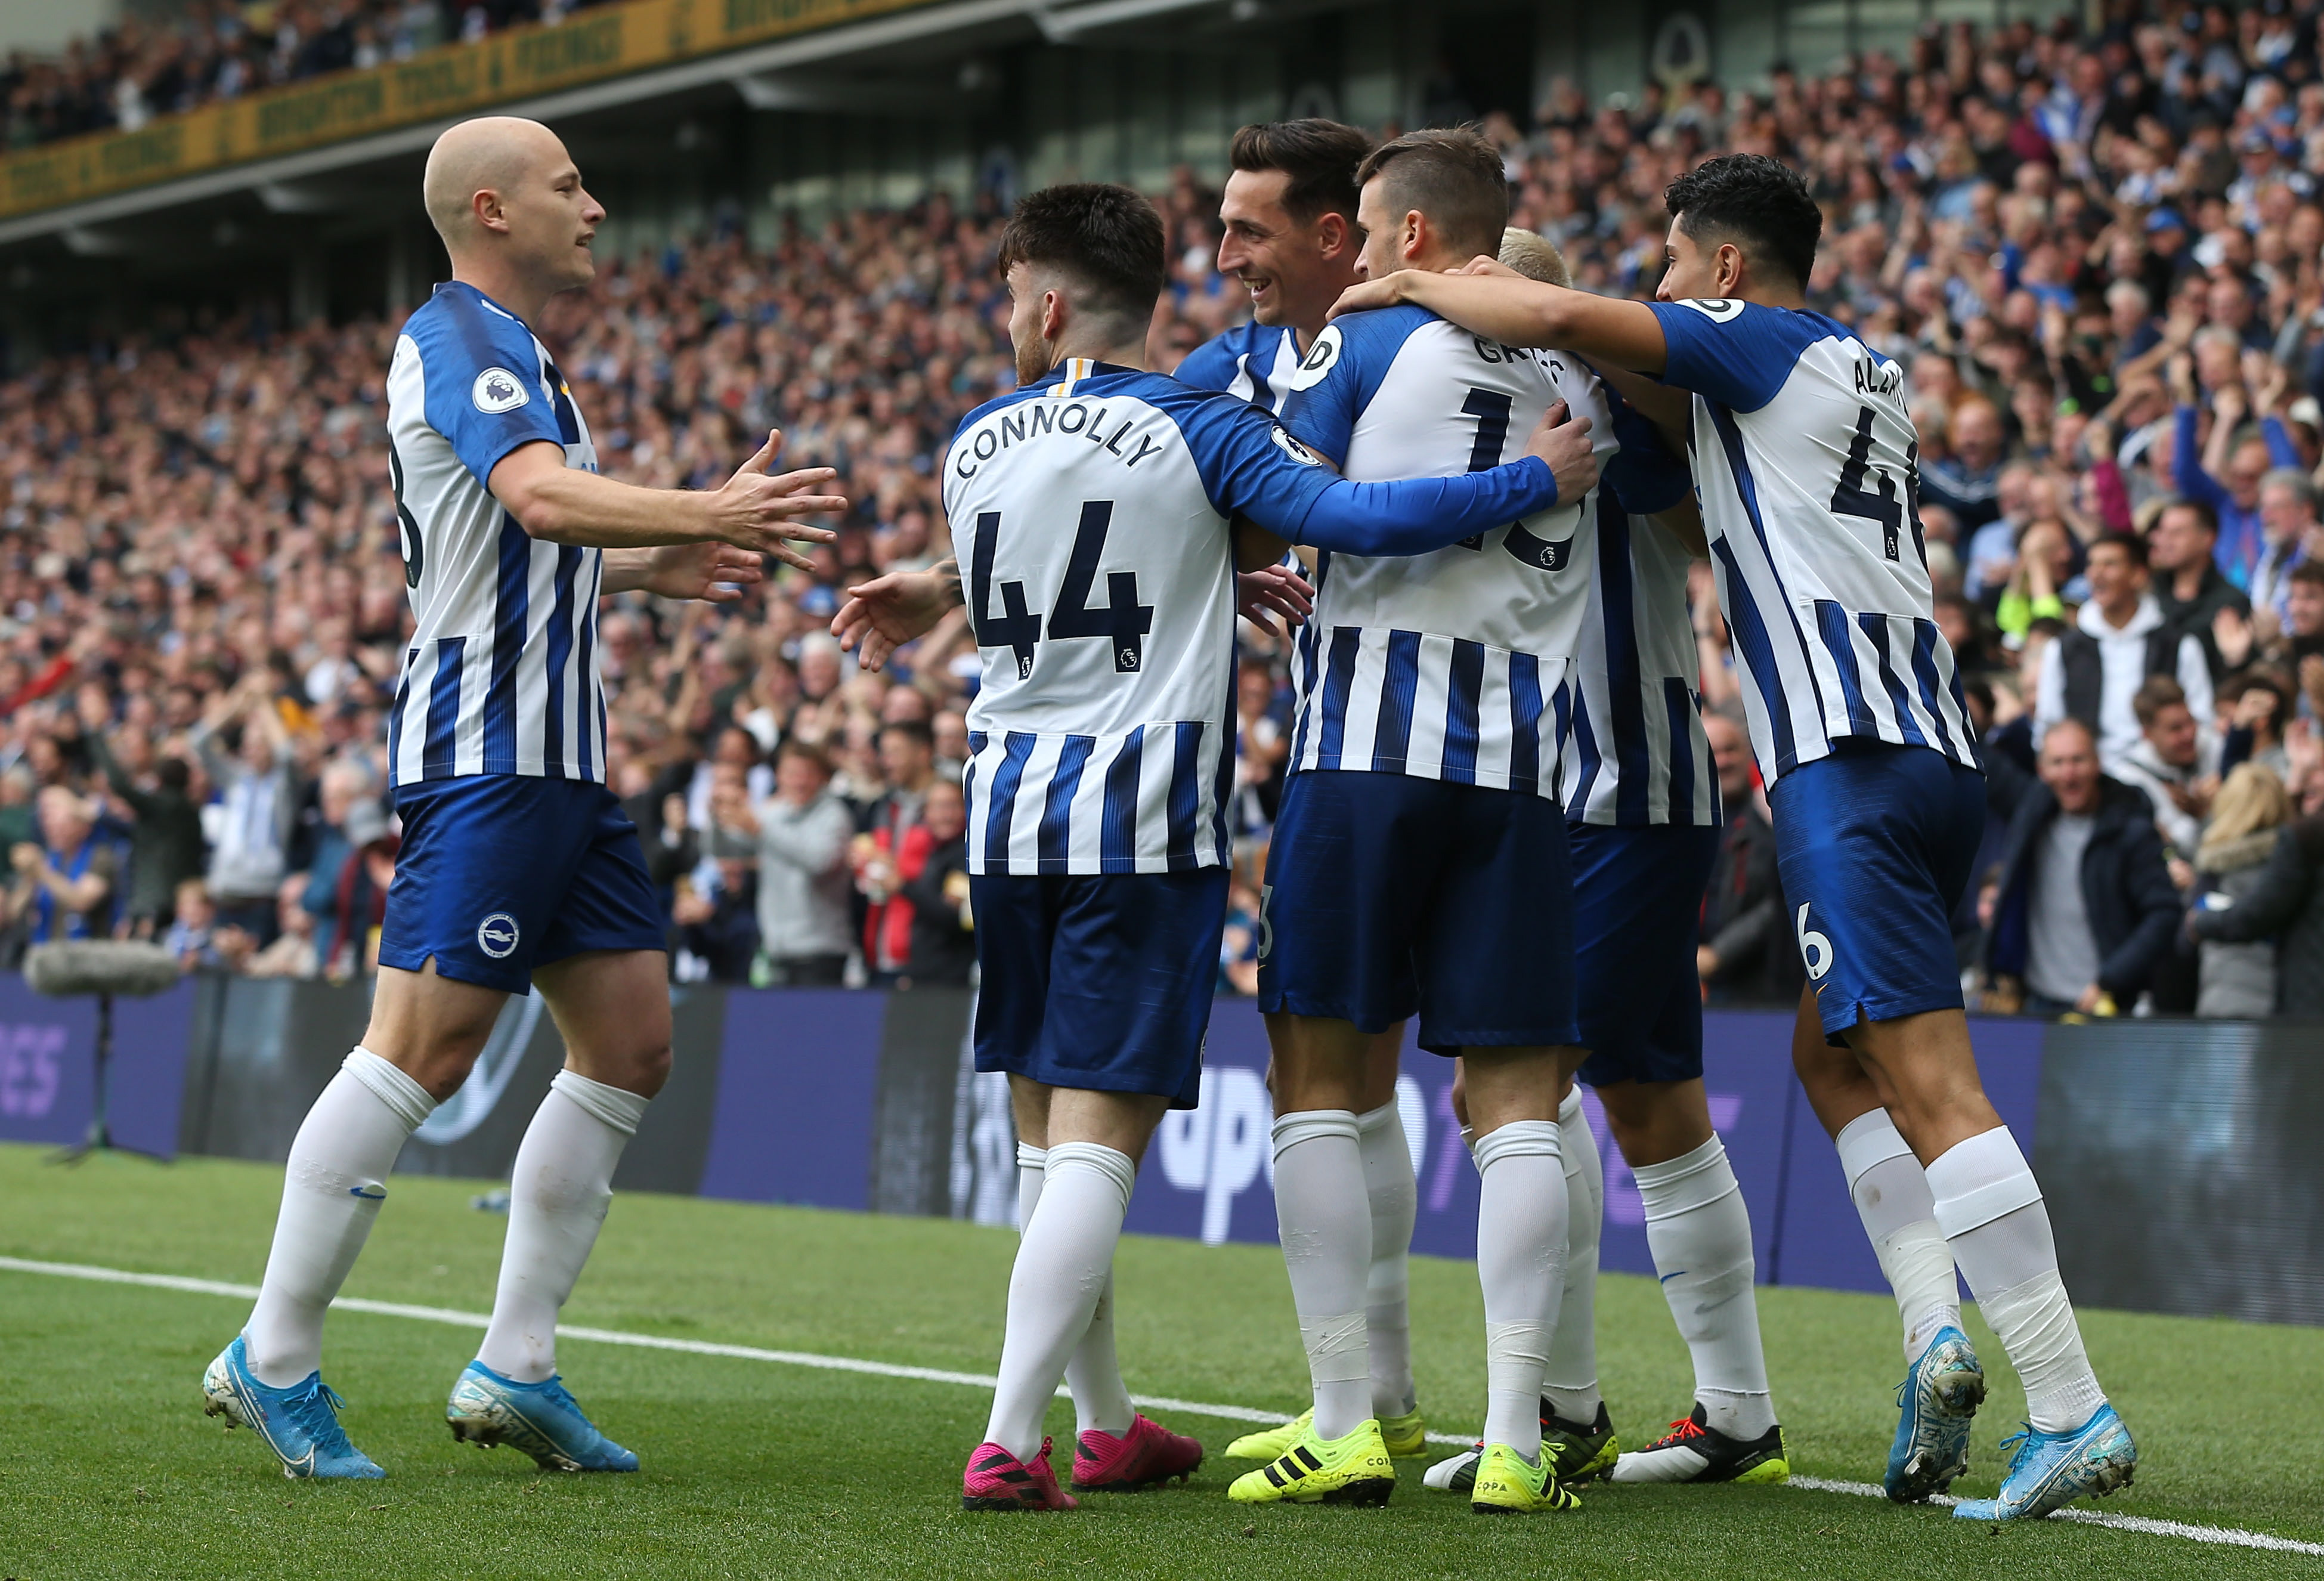 Brighton & Hove Albion's Neal Maupay hopes to score against Crystal Palace